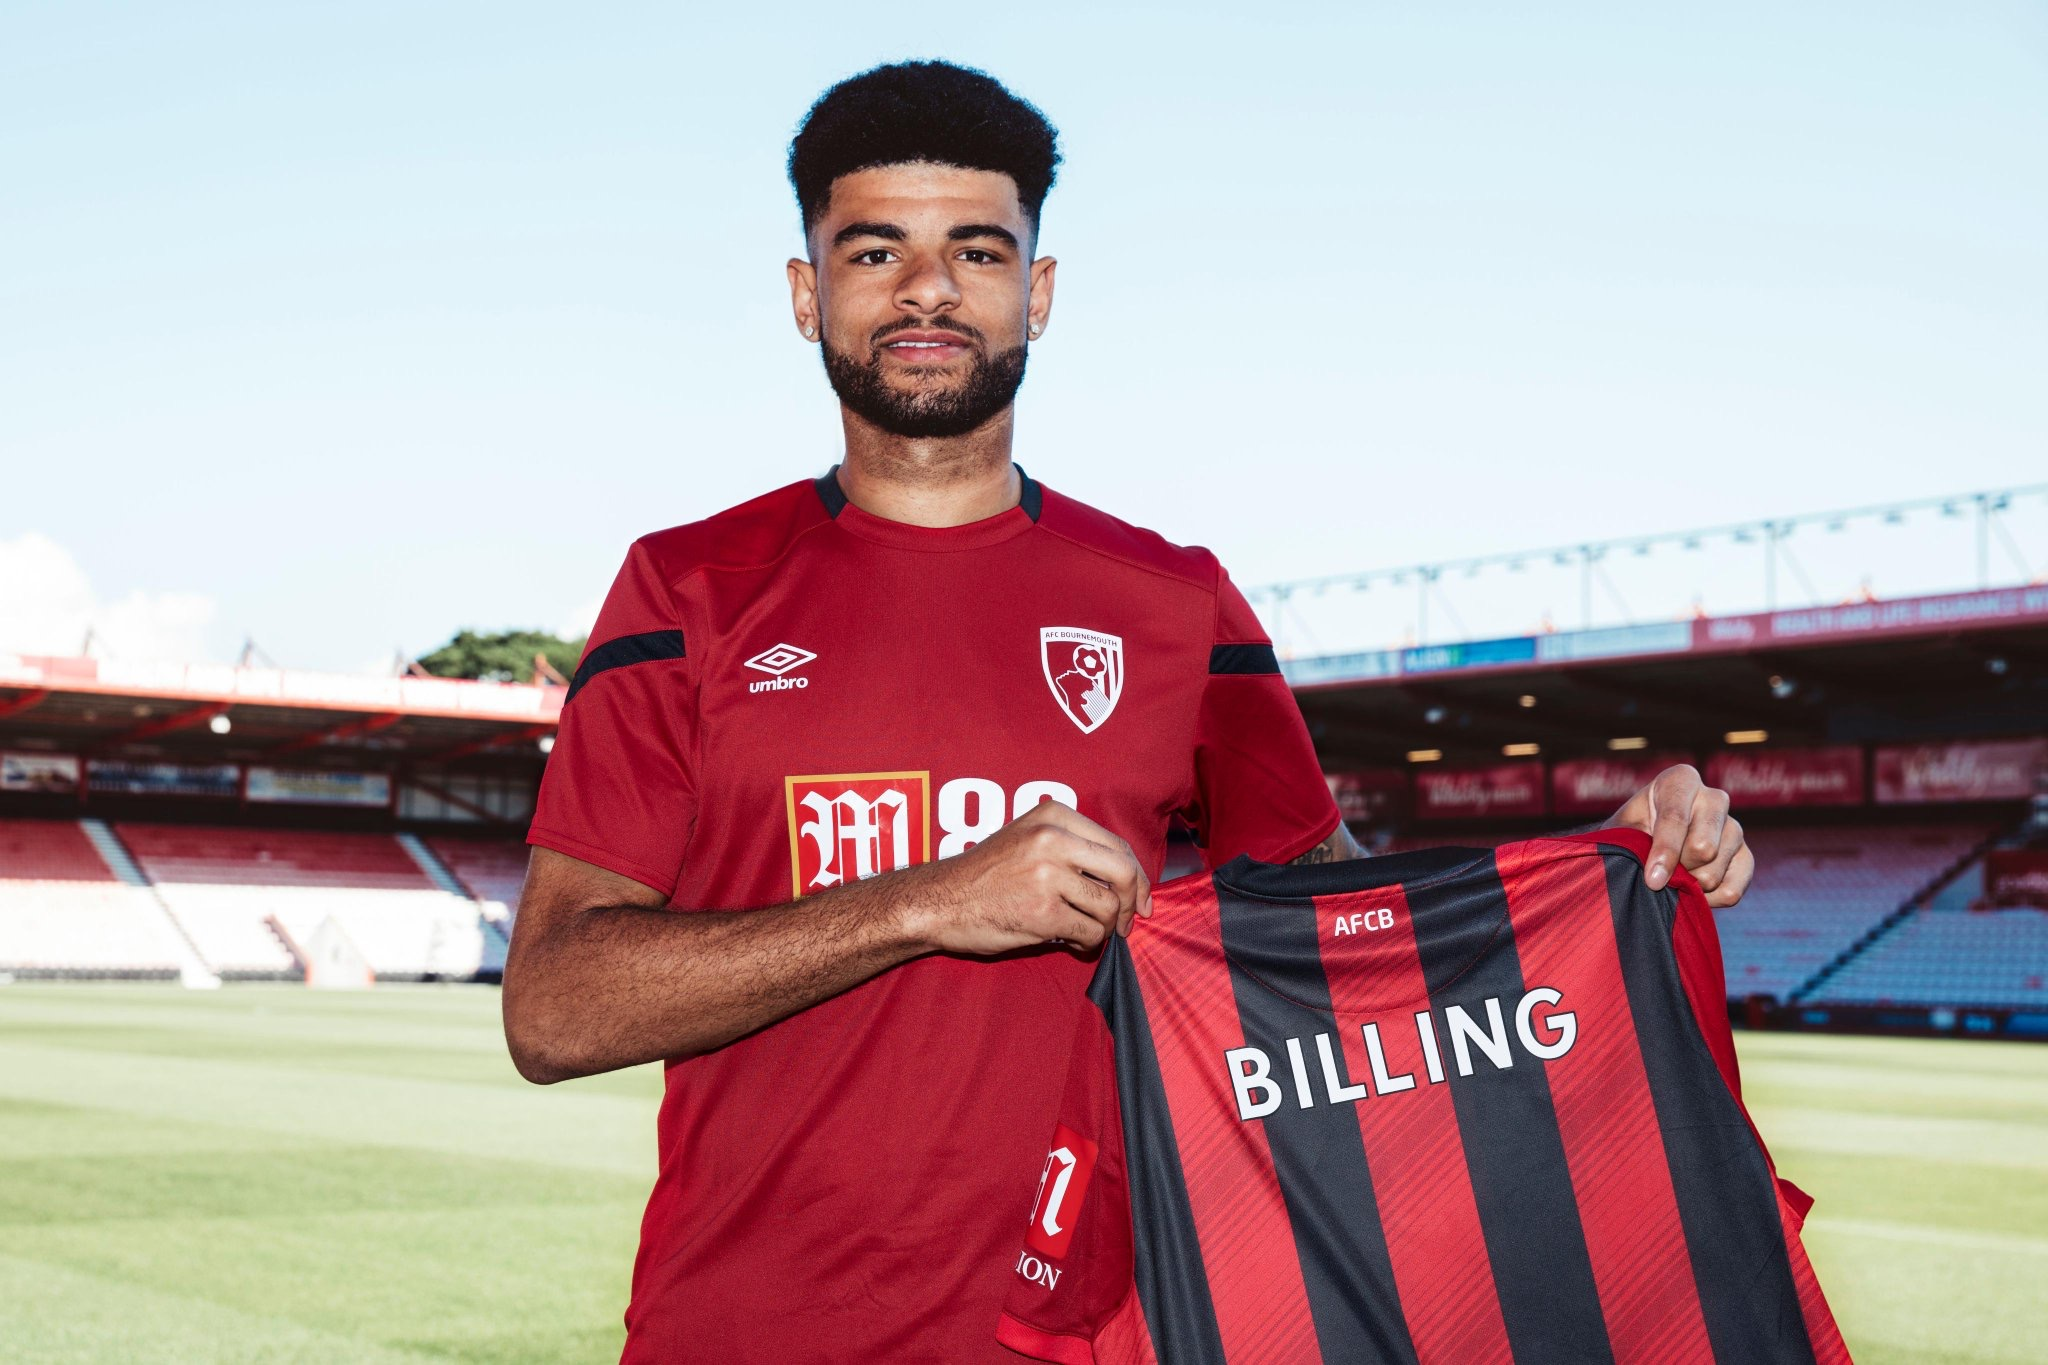 Nigeria-born Philip Billing Leaves Relegated Huddersfield Town to join AFC Bournemouth